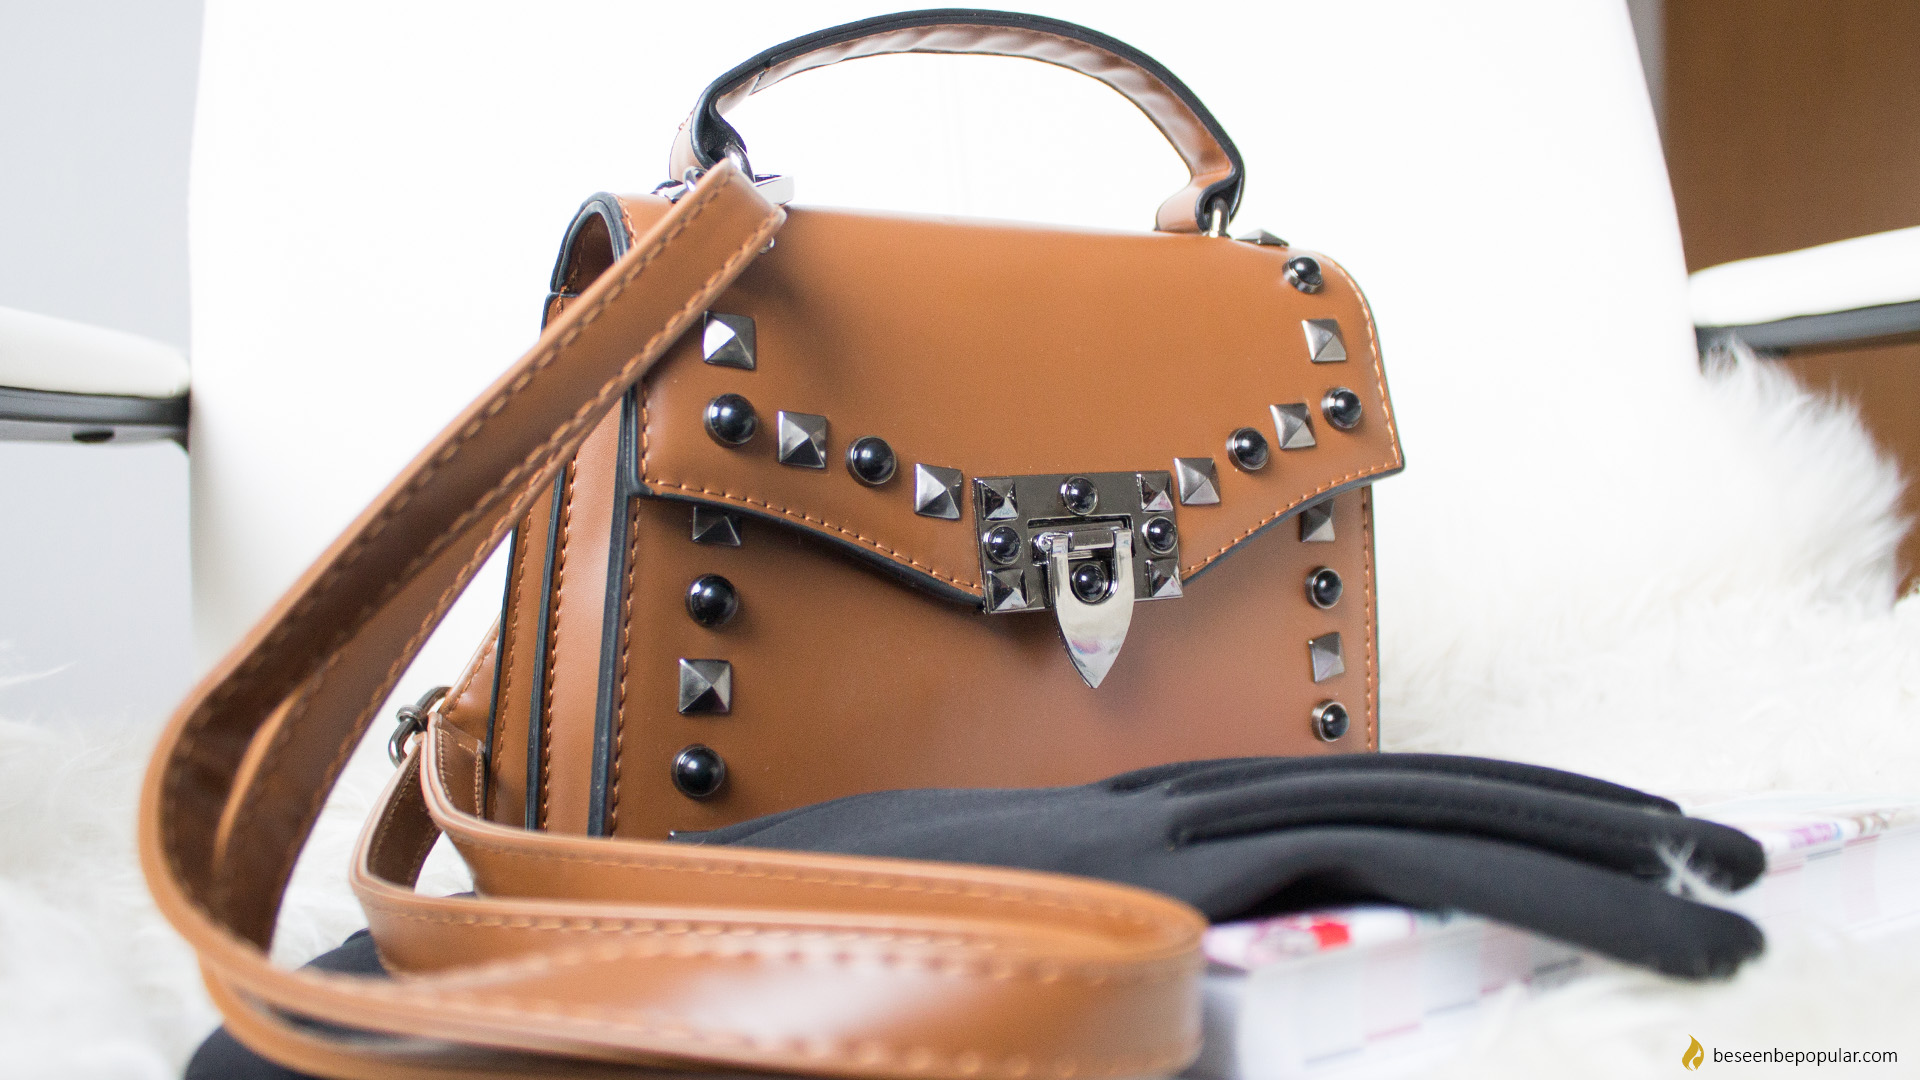 The cutest handbag from the Gamiss collection